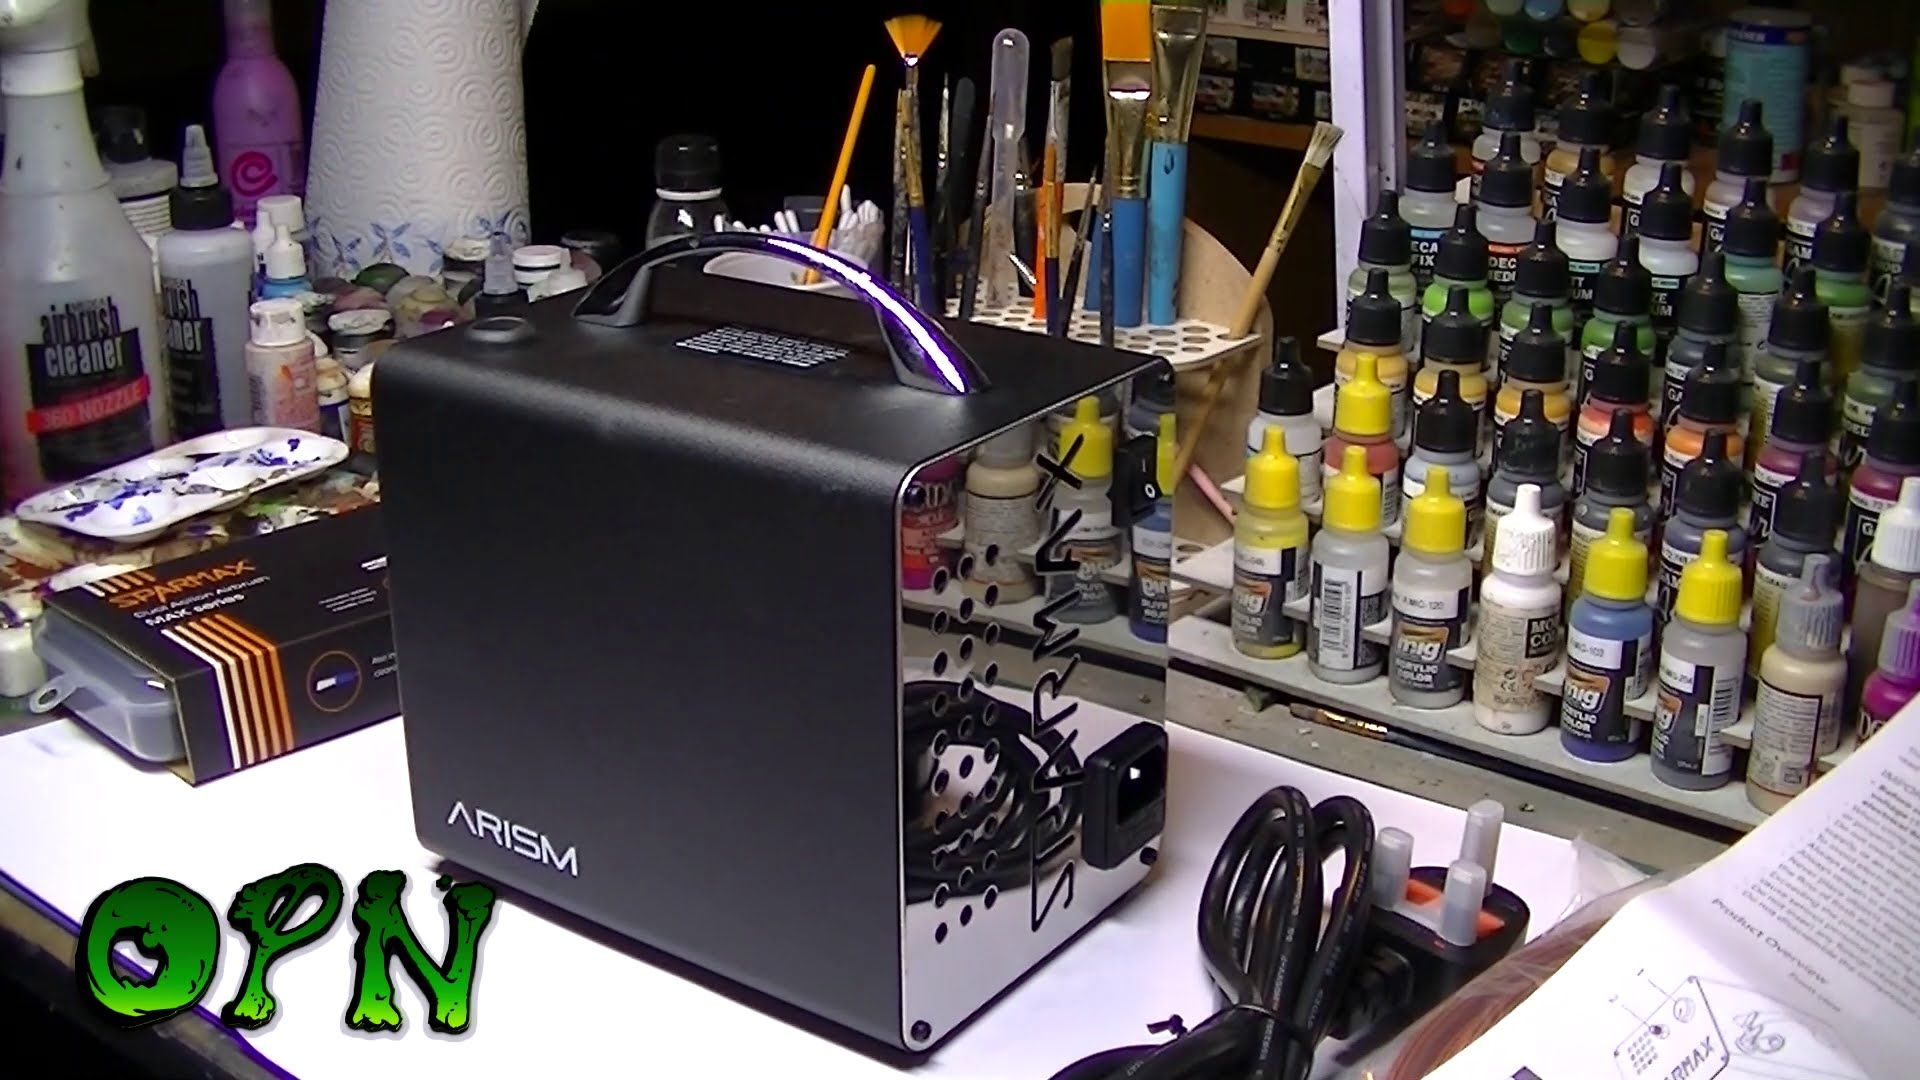 Sparmax Arism compressor and max 4 airbrush review